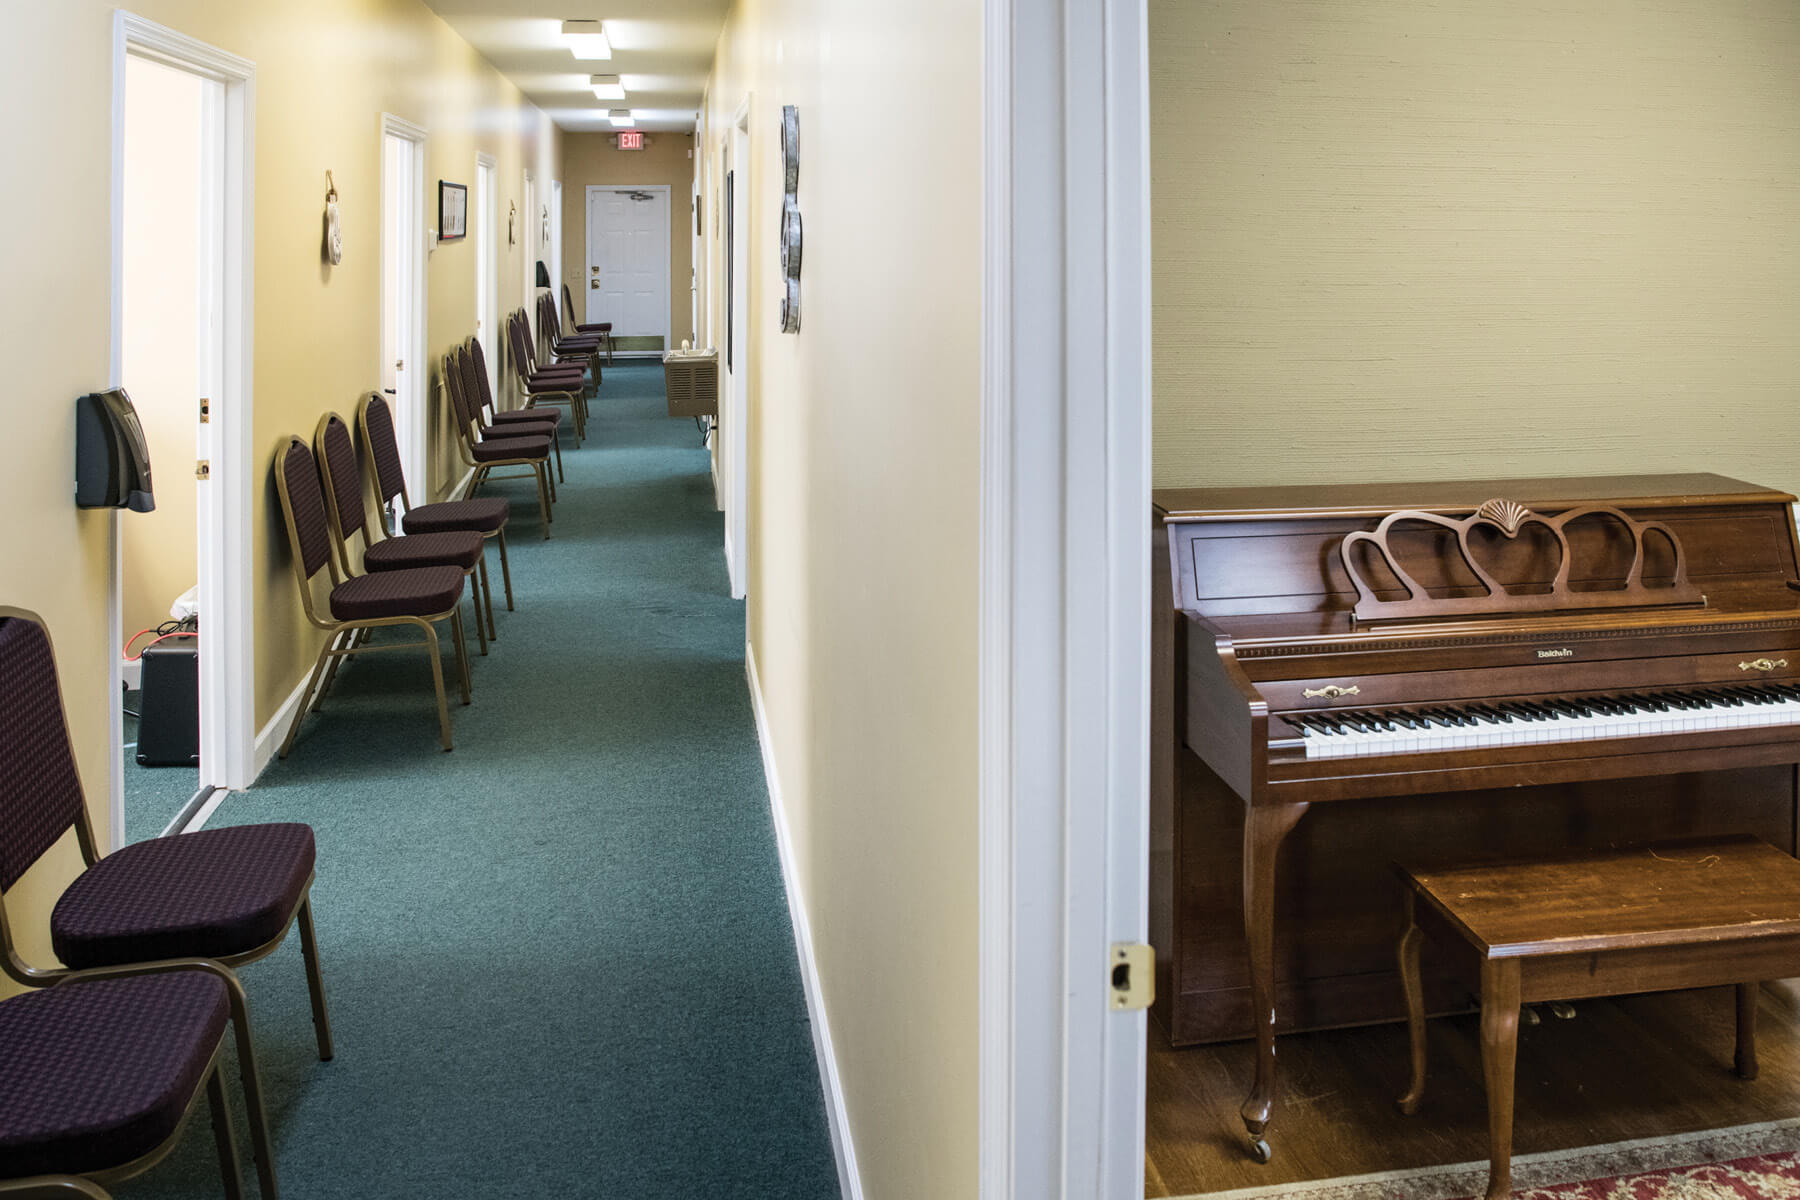 Piano and hallway at Irmo Music Academy